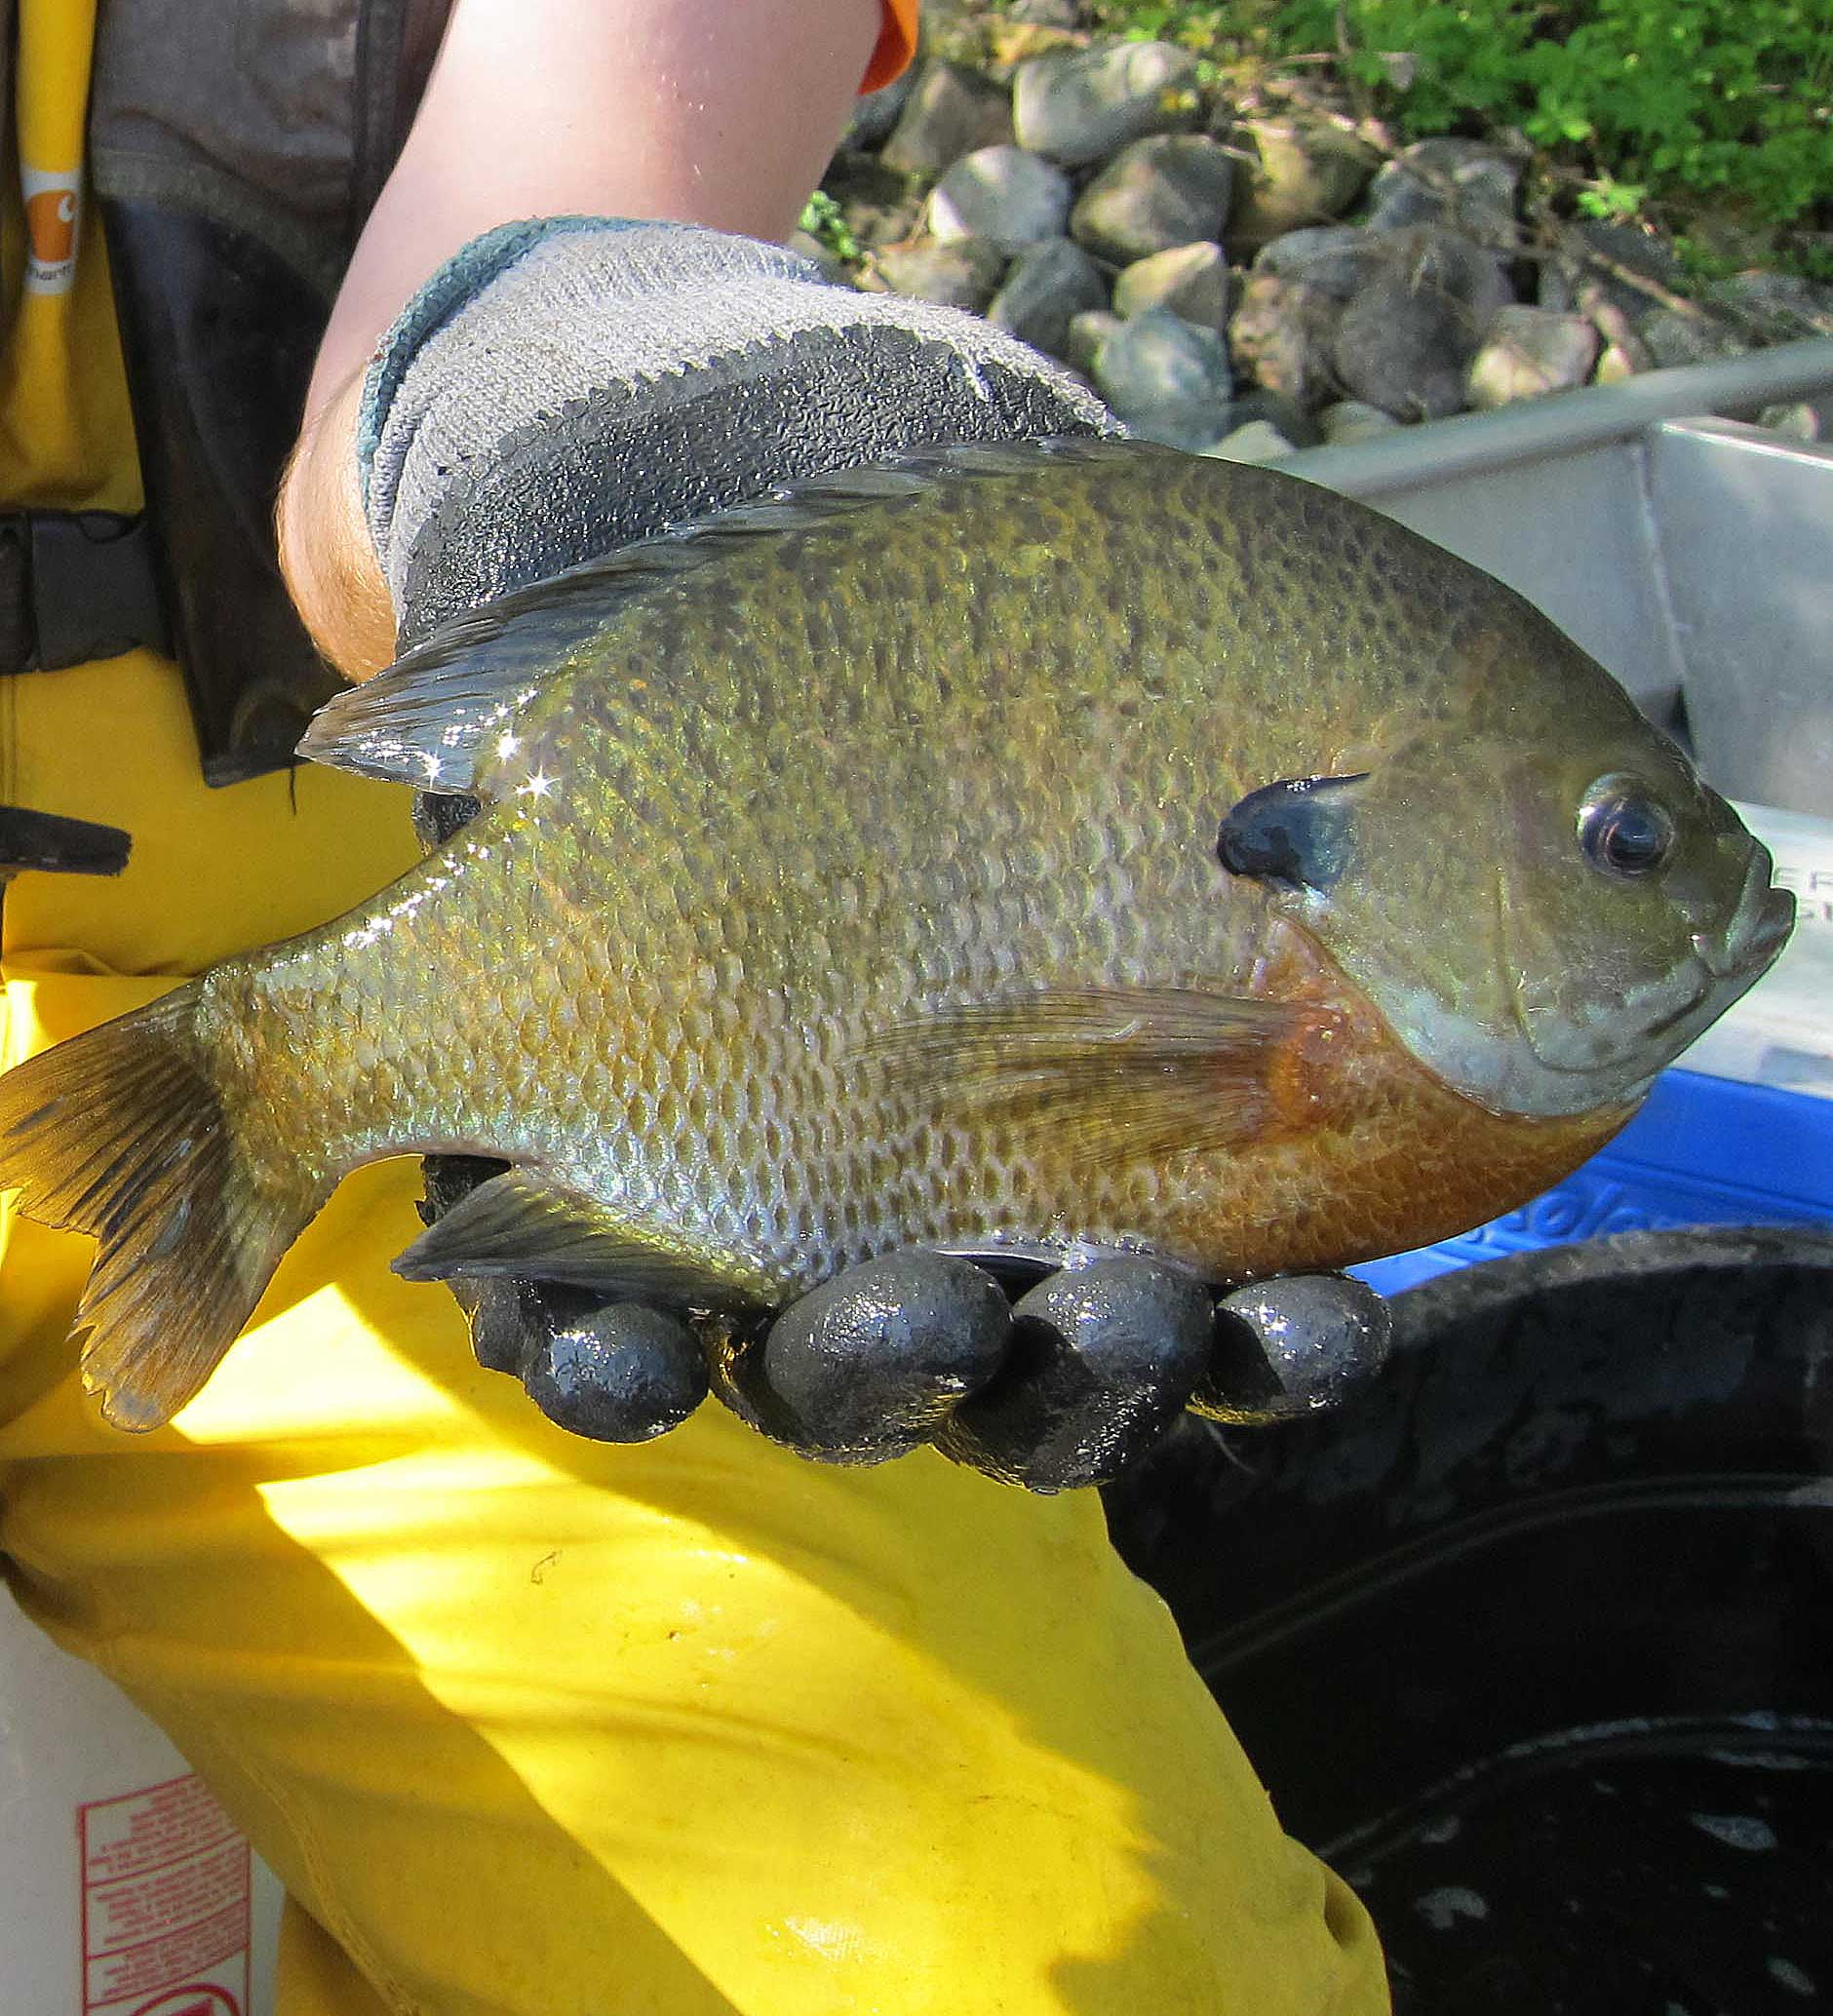 Image of a DNR fisheries staff holding two large sunfish